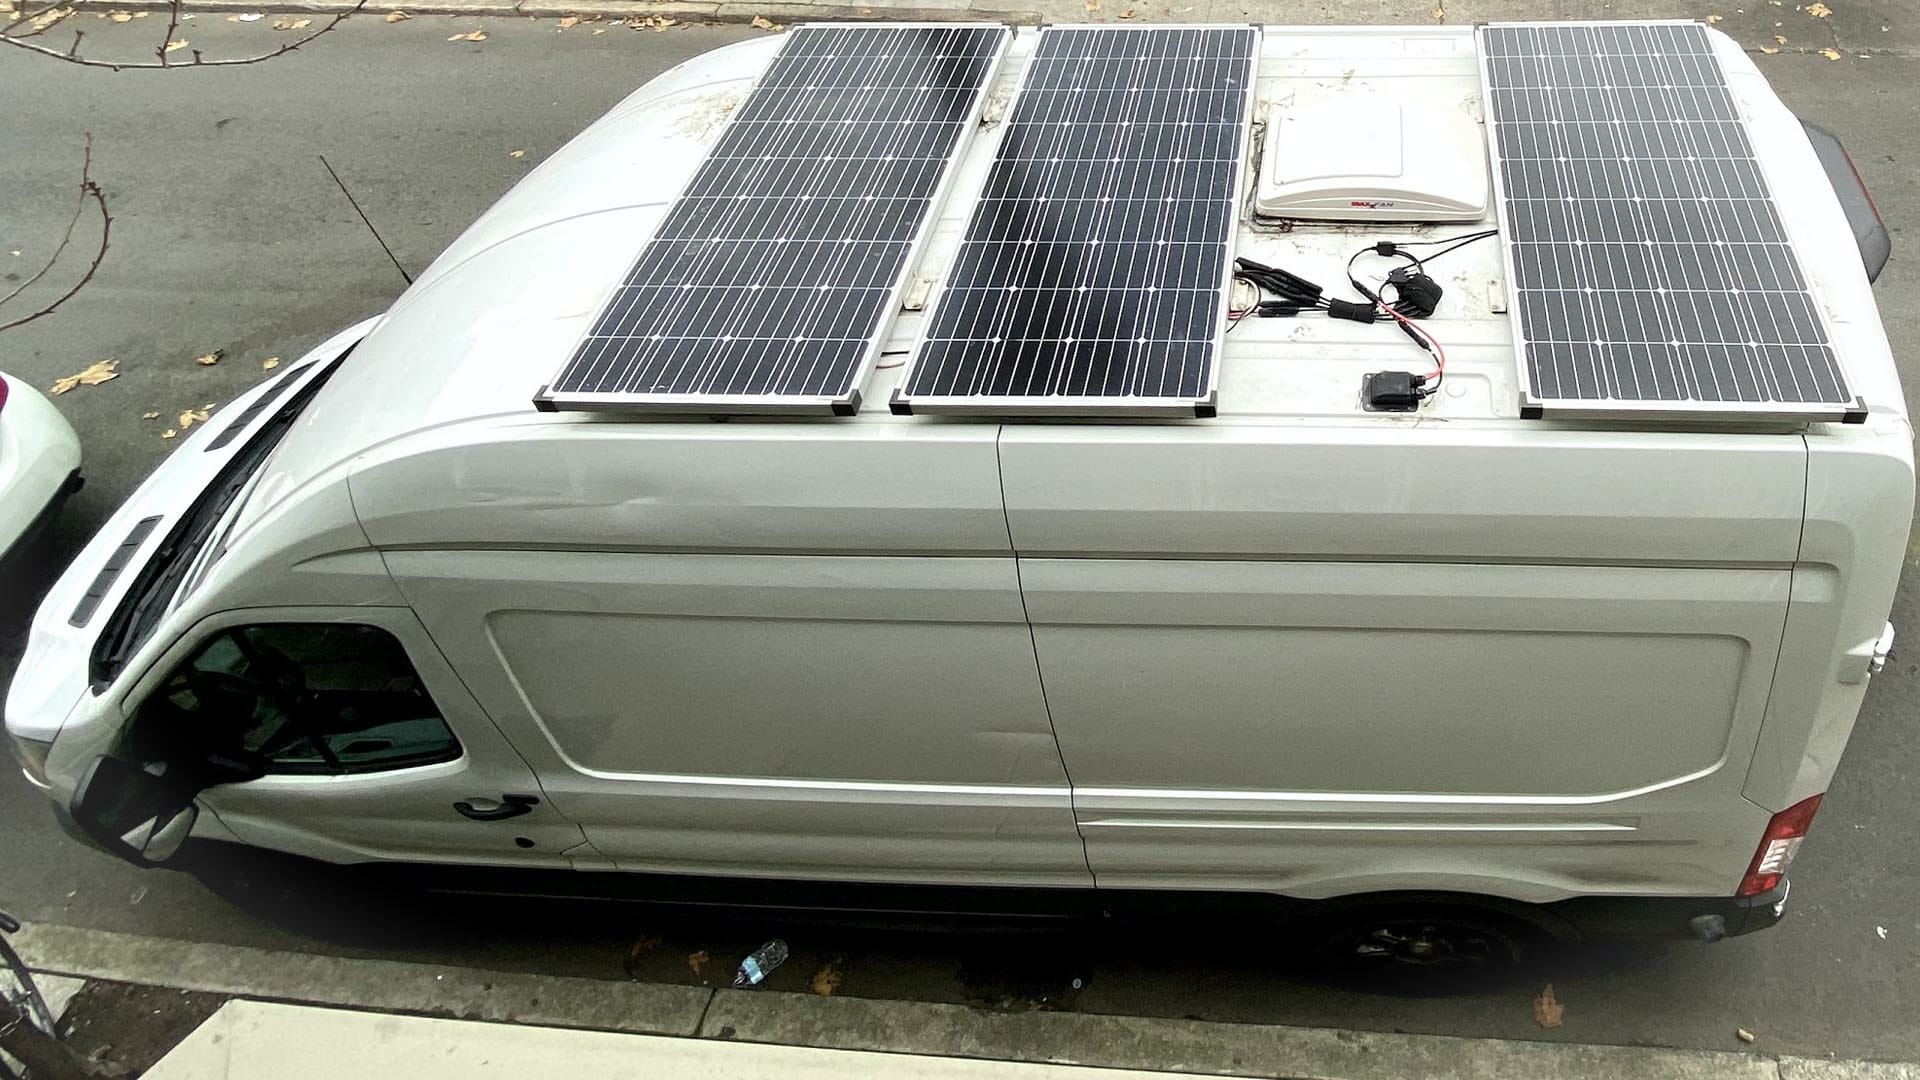 van with solar panels on the roof